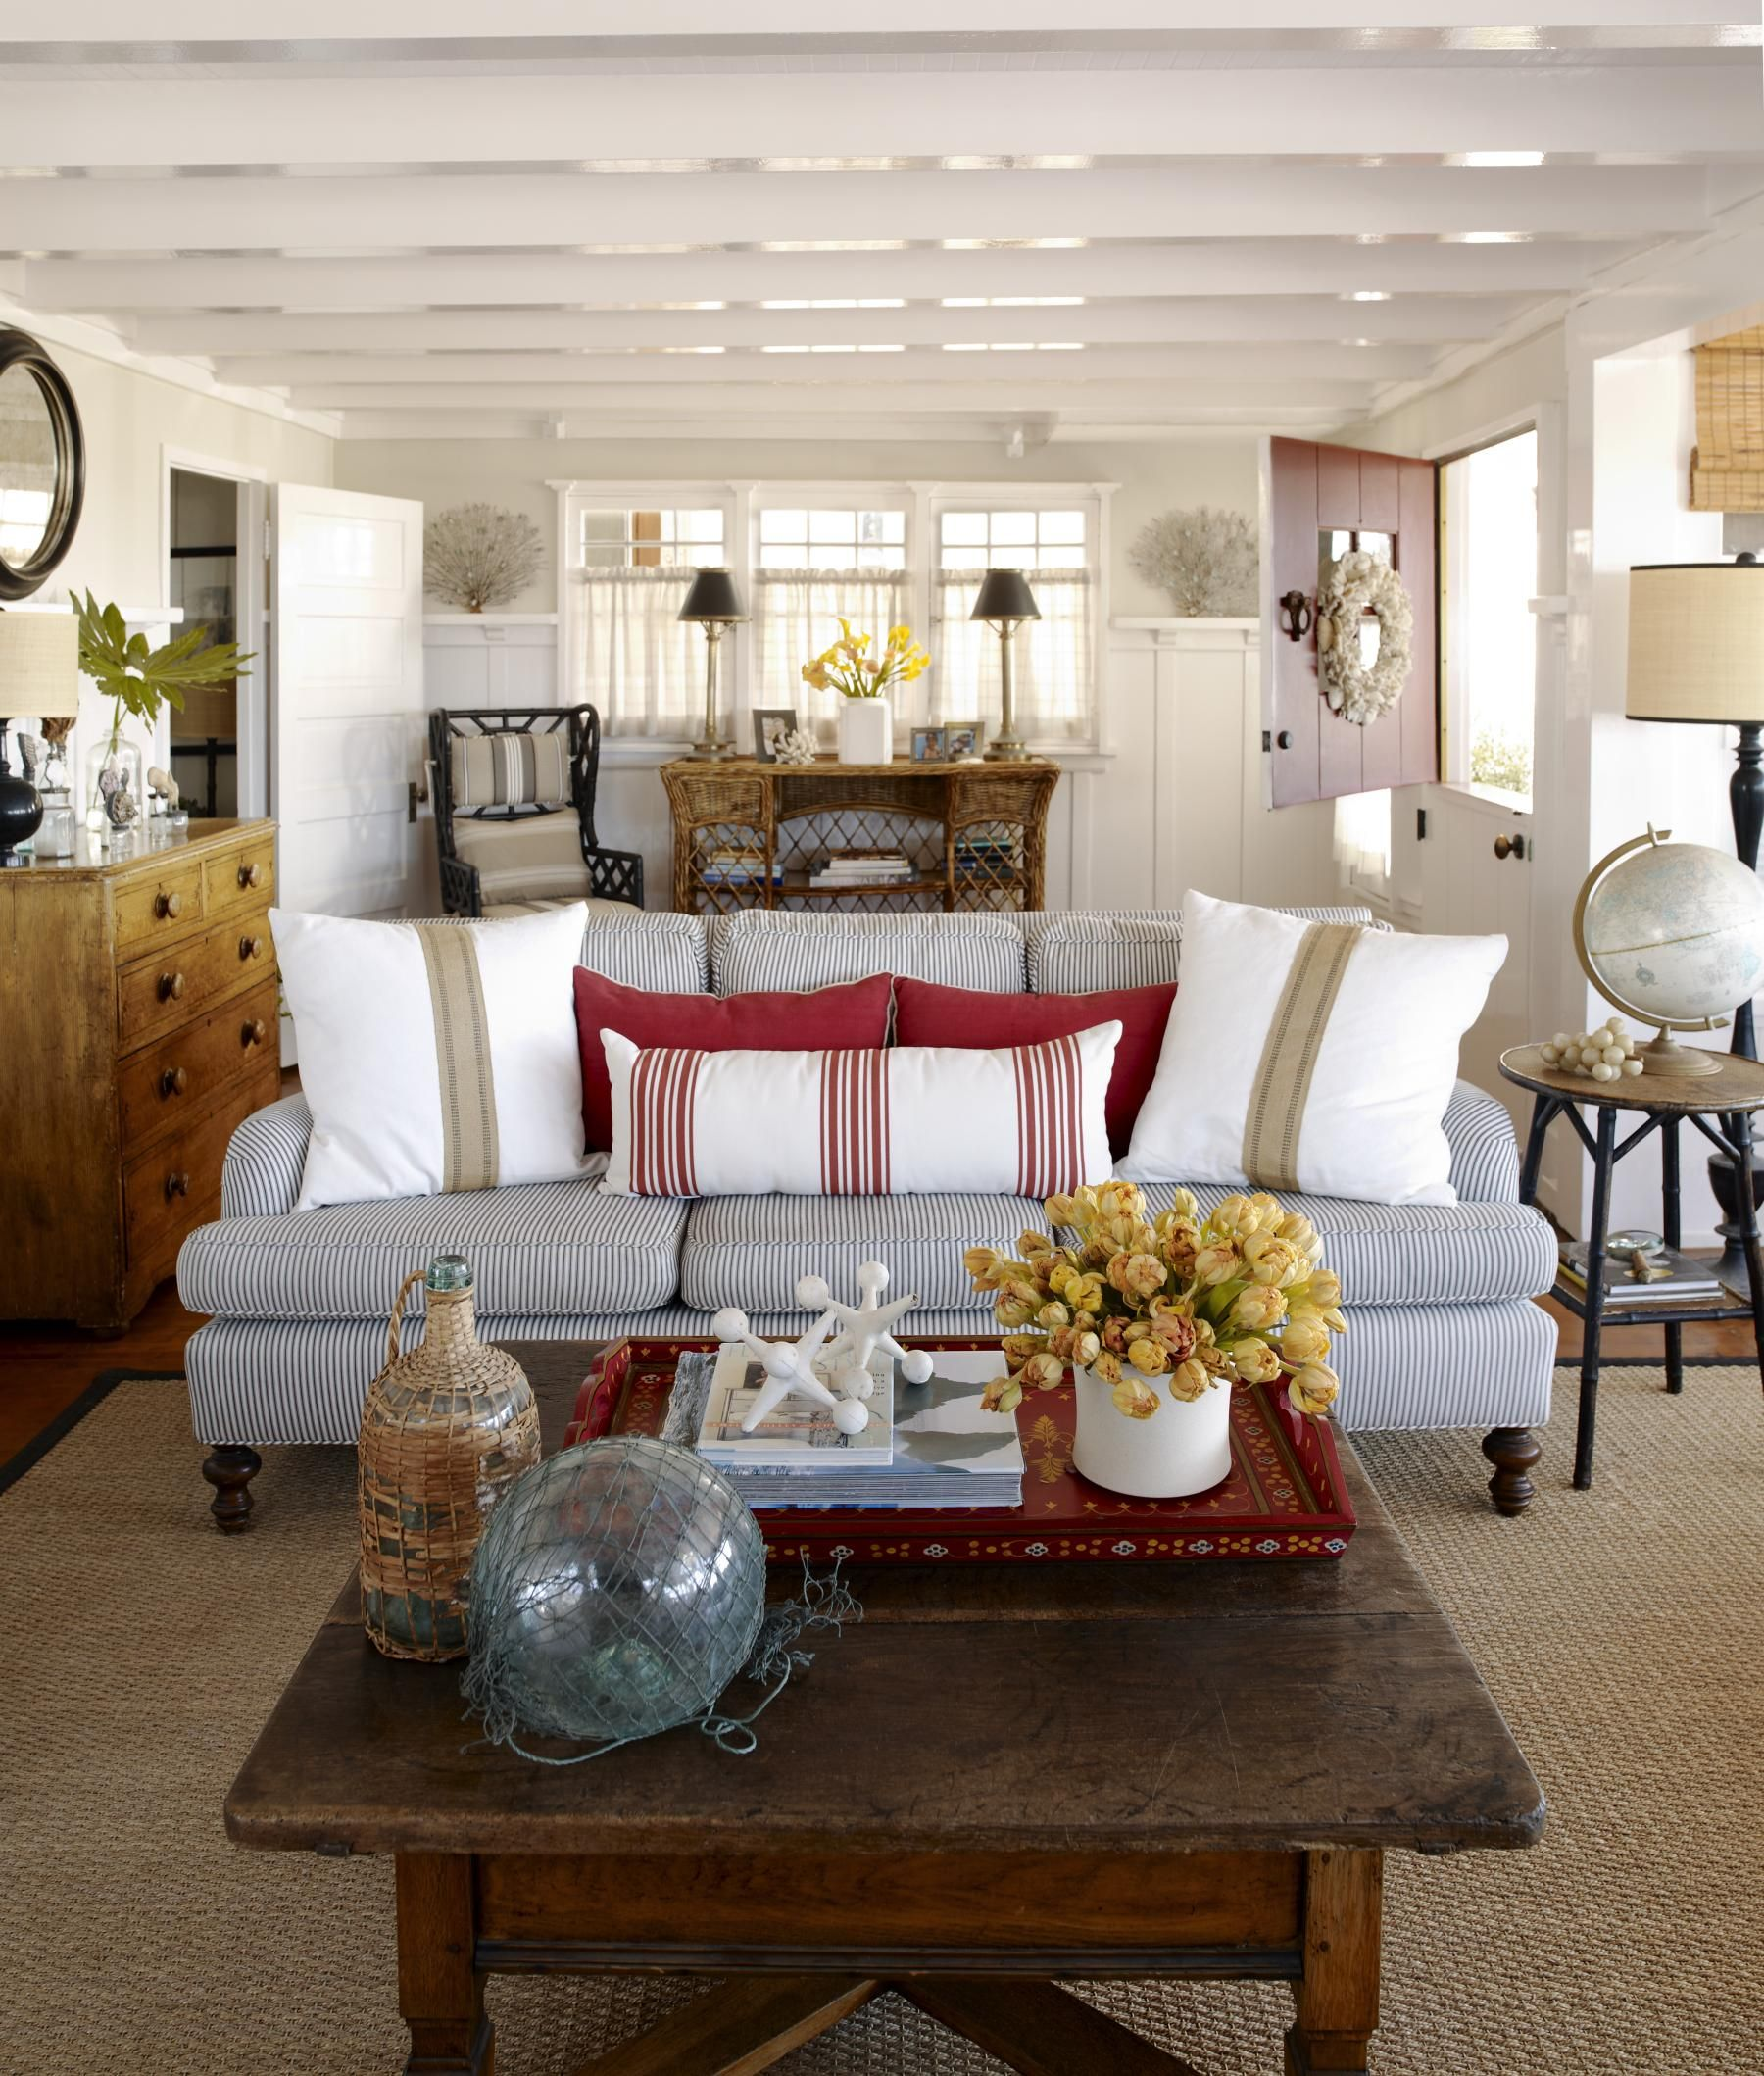 Coastal beach cottage style with nautical decor